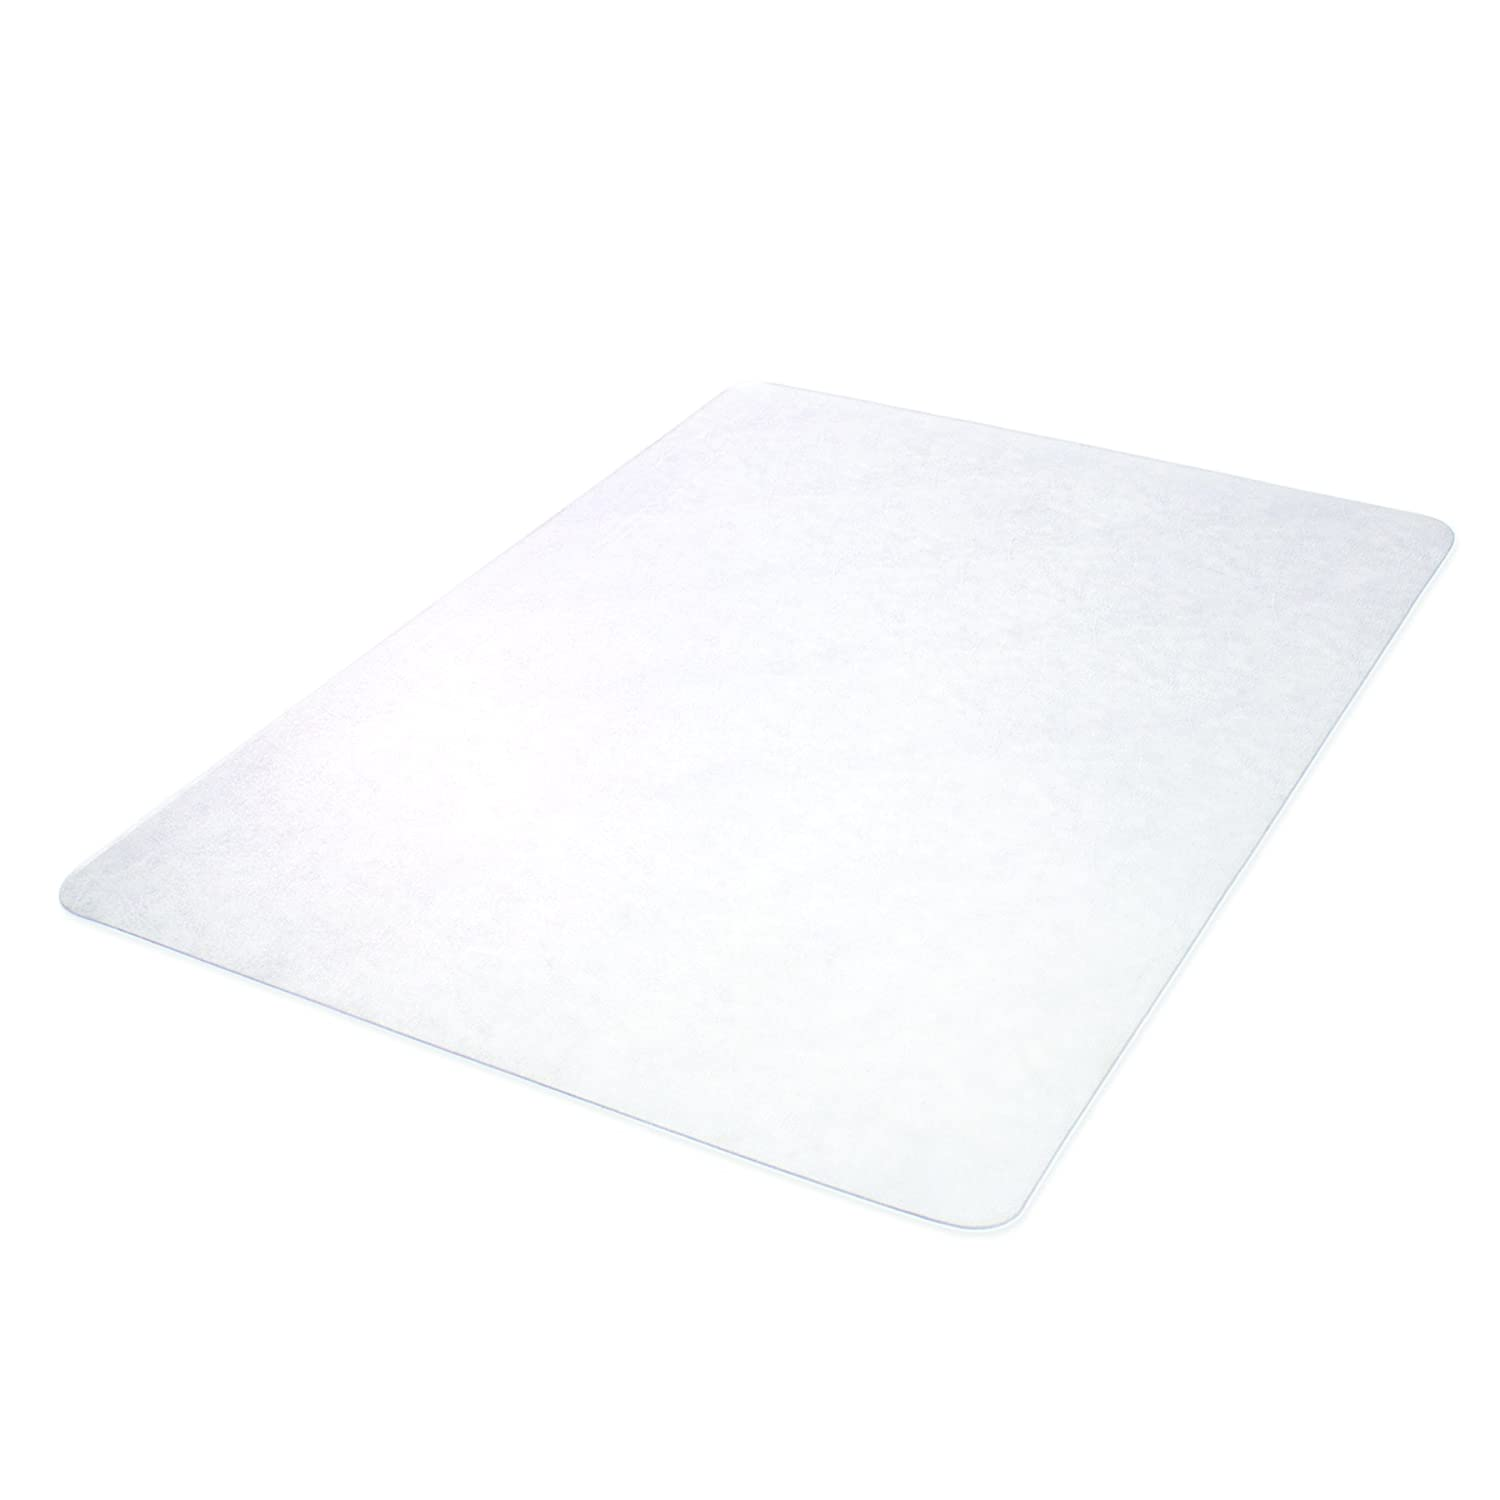 Deflecto SuperMat Clear Chair Mat, Hard Floor Use, Rectangle, Beveled Edge, 45 x 53 Inches CM24243